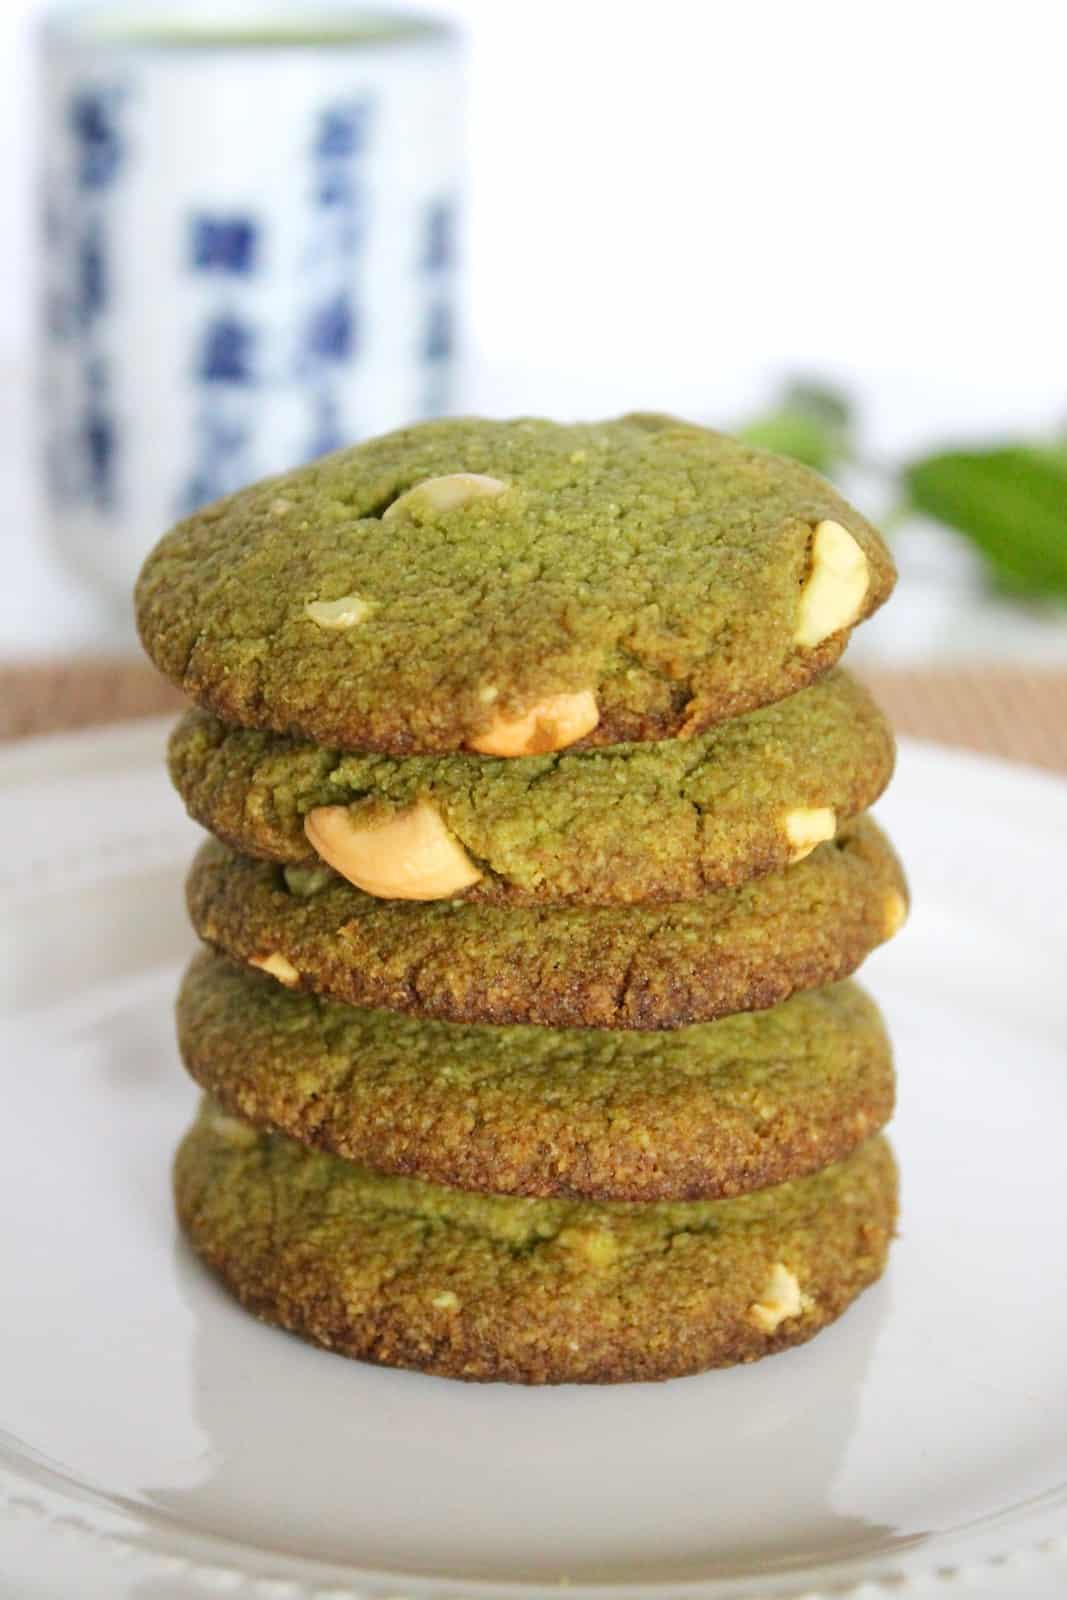 Close up of five stacked matcha green tea cookies on a white plate with a mug of green tea and green leaves in the background